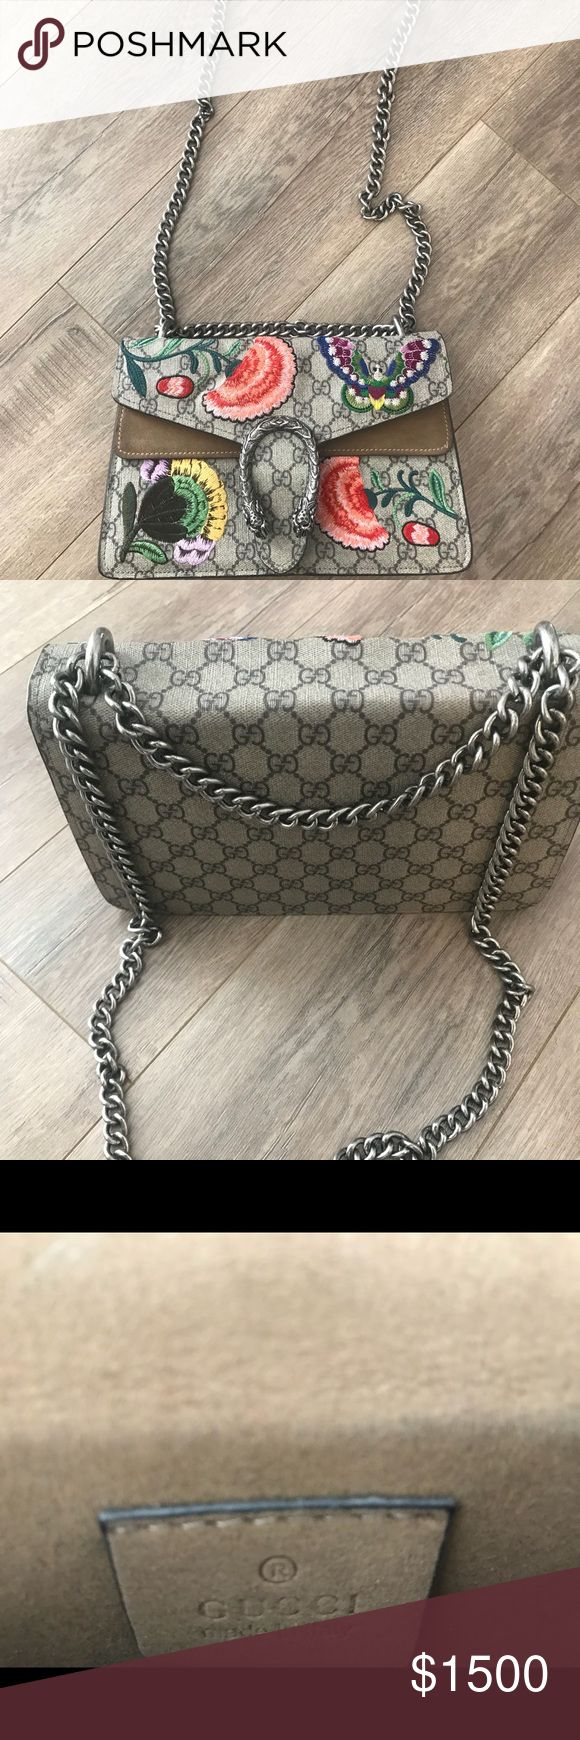 🦋🌻🌸Gucci GG supreme Dinosaur Flowers Moth One of the best bags of the Season. The bag is in great condition on the outside, as show in pictures slight wear on the inside. #gucci #bag #flowers #moth #supreme #celine #fendi #chanel Gucci Bags Shoulder Bags